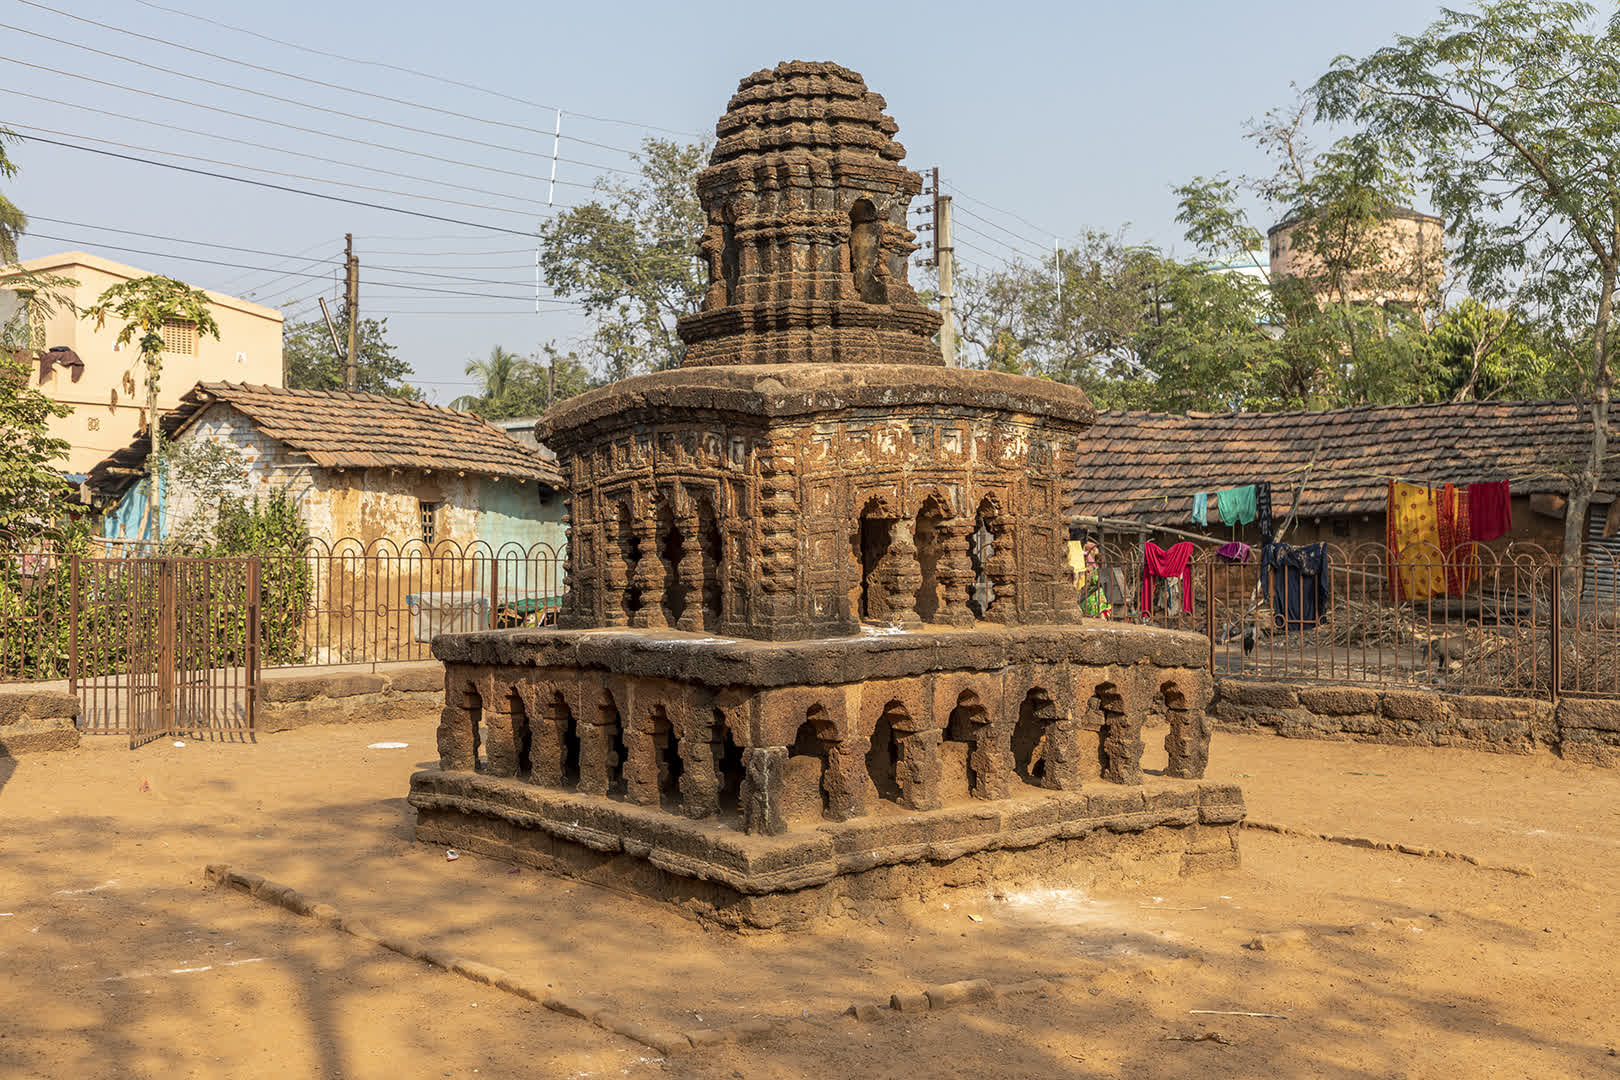 A stone chariot